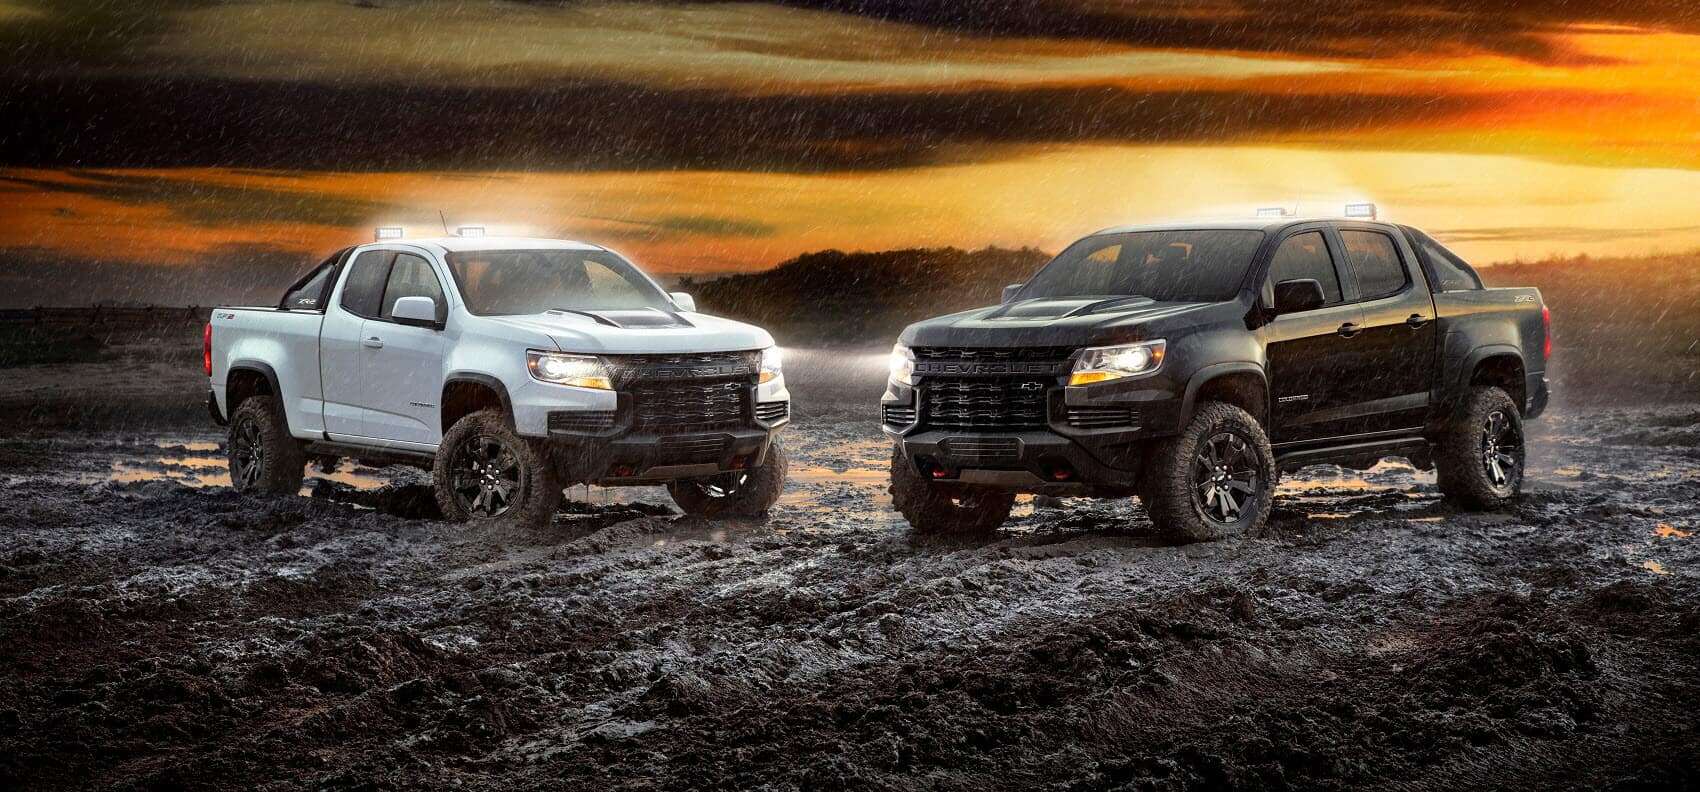 2021 Chevy Colorado